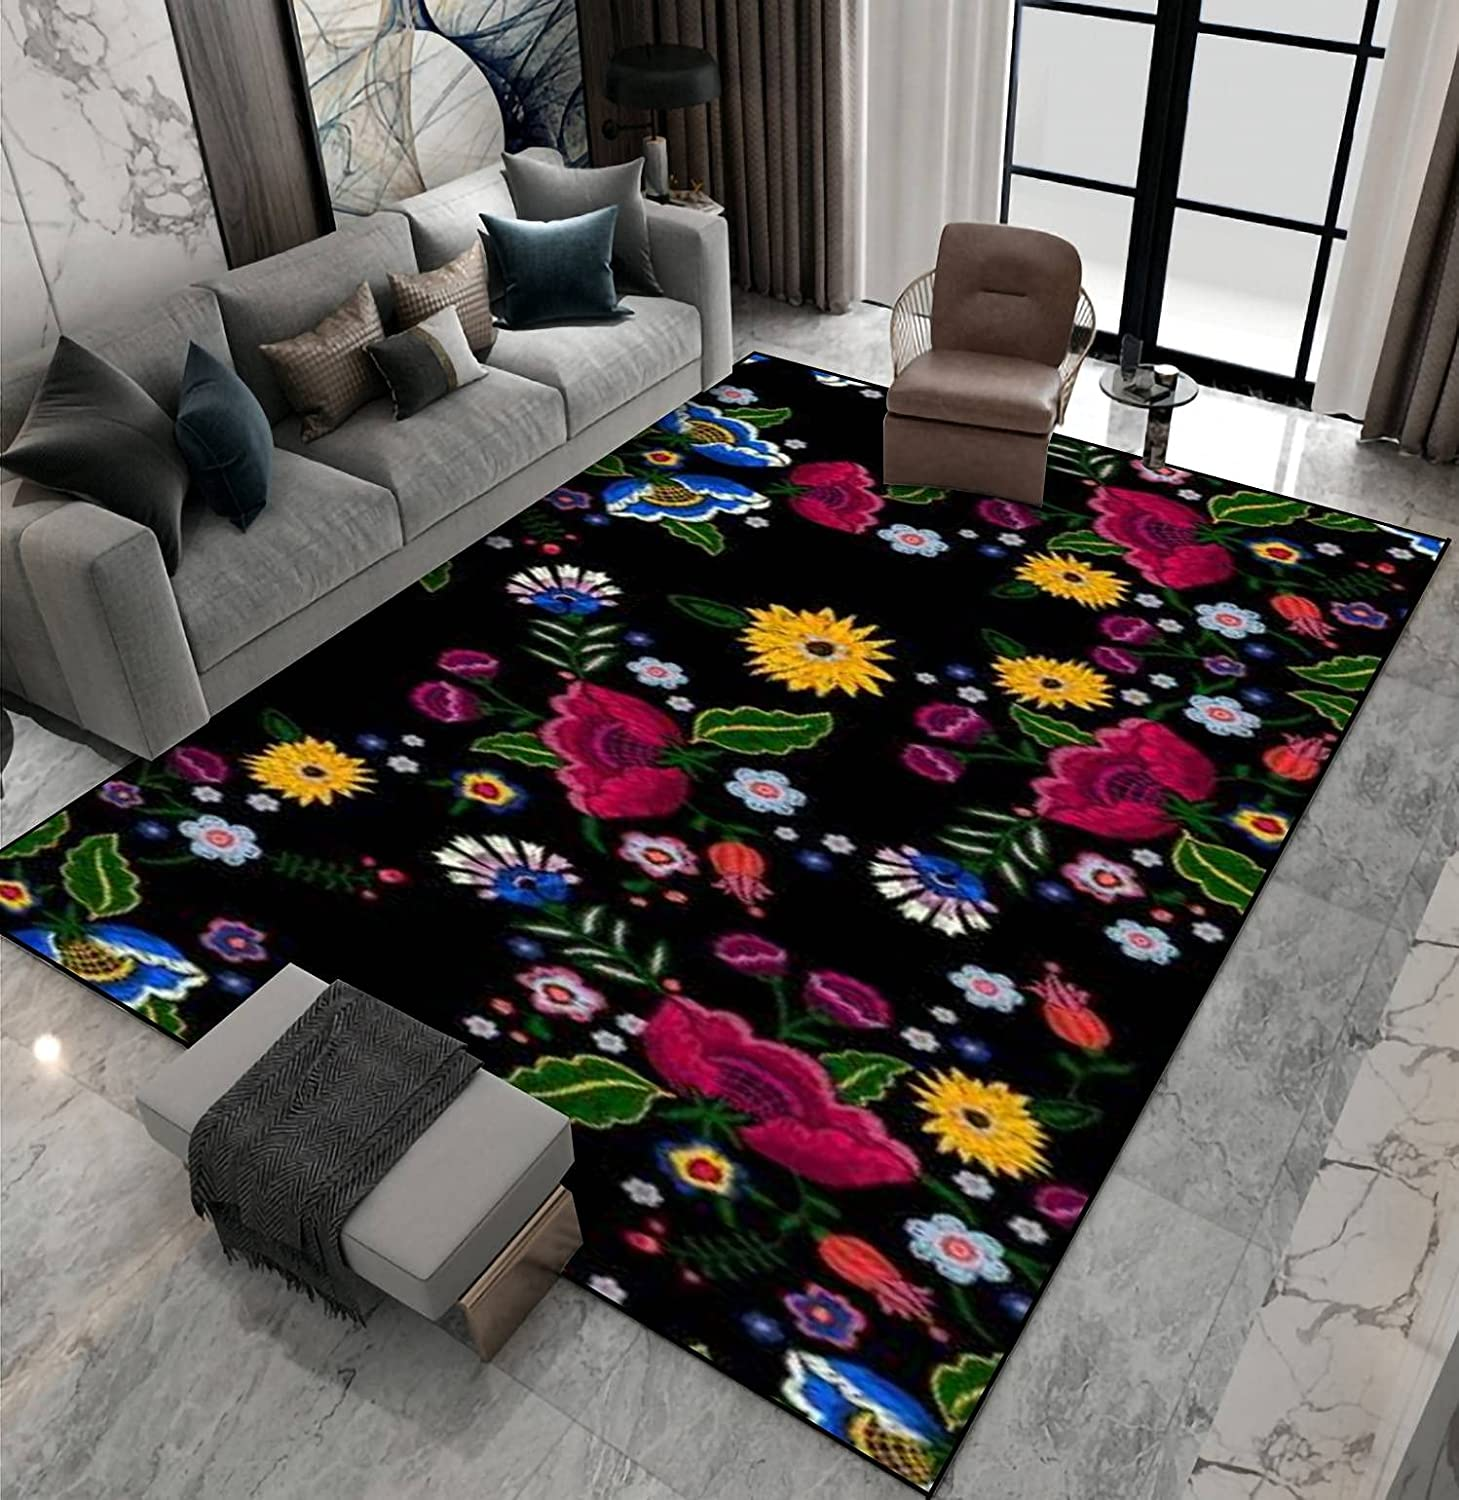 Fort List price Worth Mall Area Rug Non-Slip Floor Mat Seamless Embroidery Native w Pattern